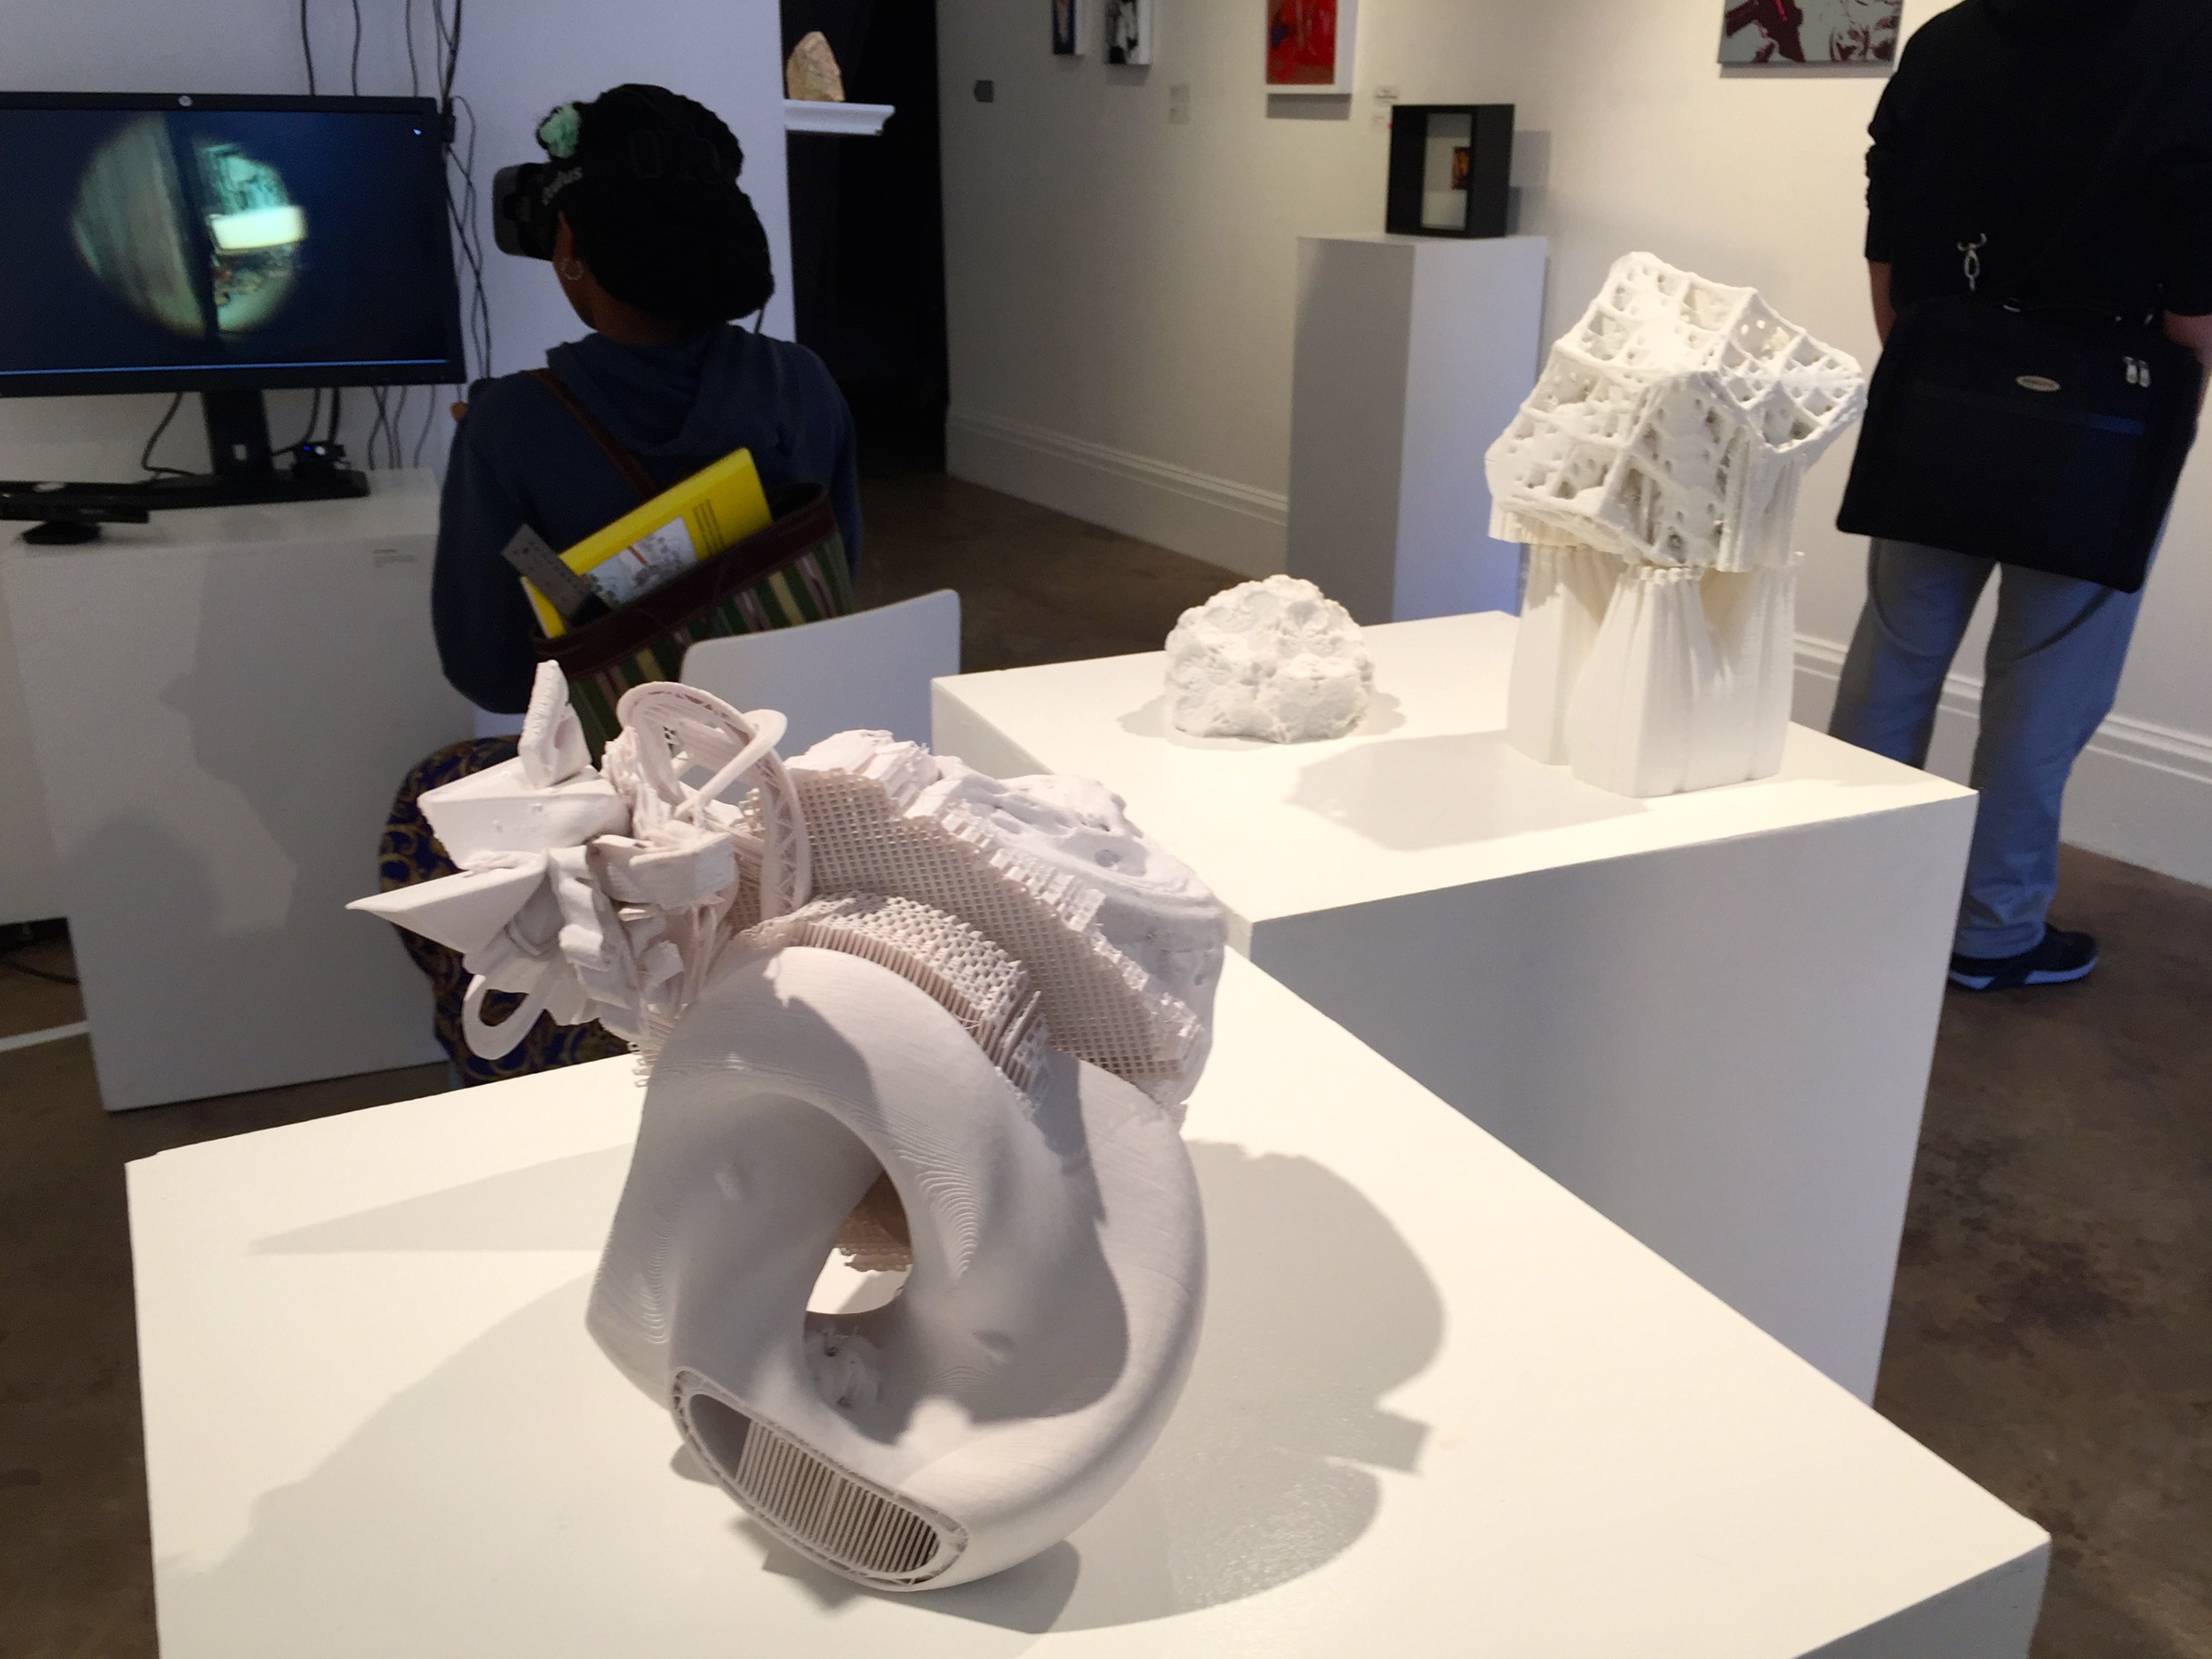 Fractal Series 2 ABS plastic 3D printed assemblages  at the Non-Fiction Gallery for PULSE Tech+Art Festival 2015  . View 2.